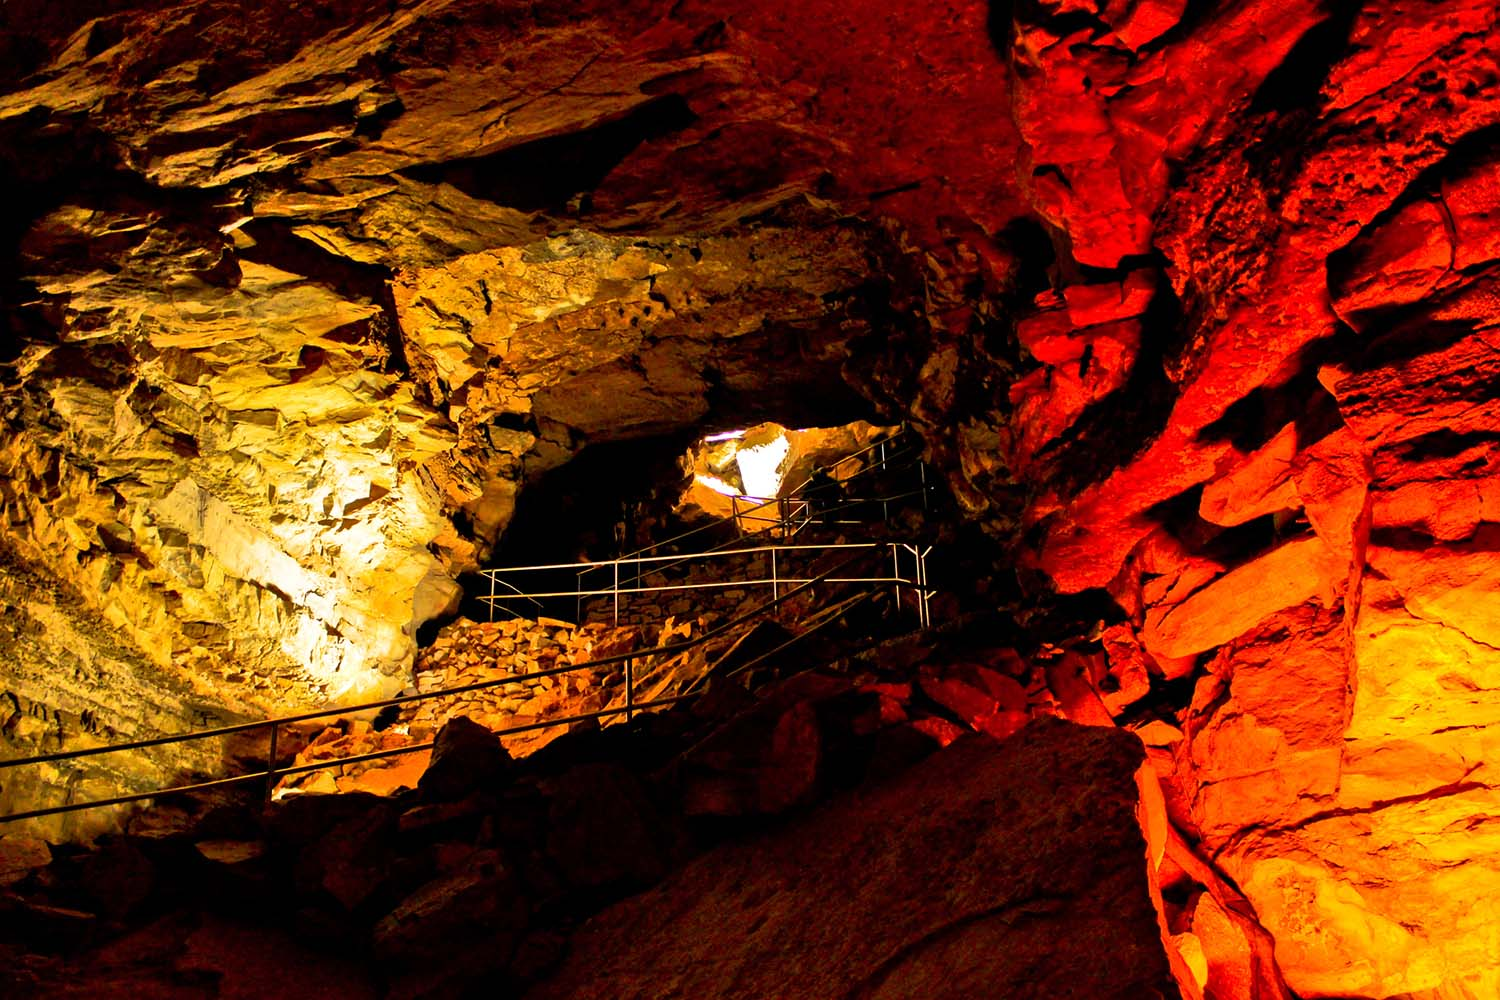 Mouth of a cave bathed in red light.